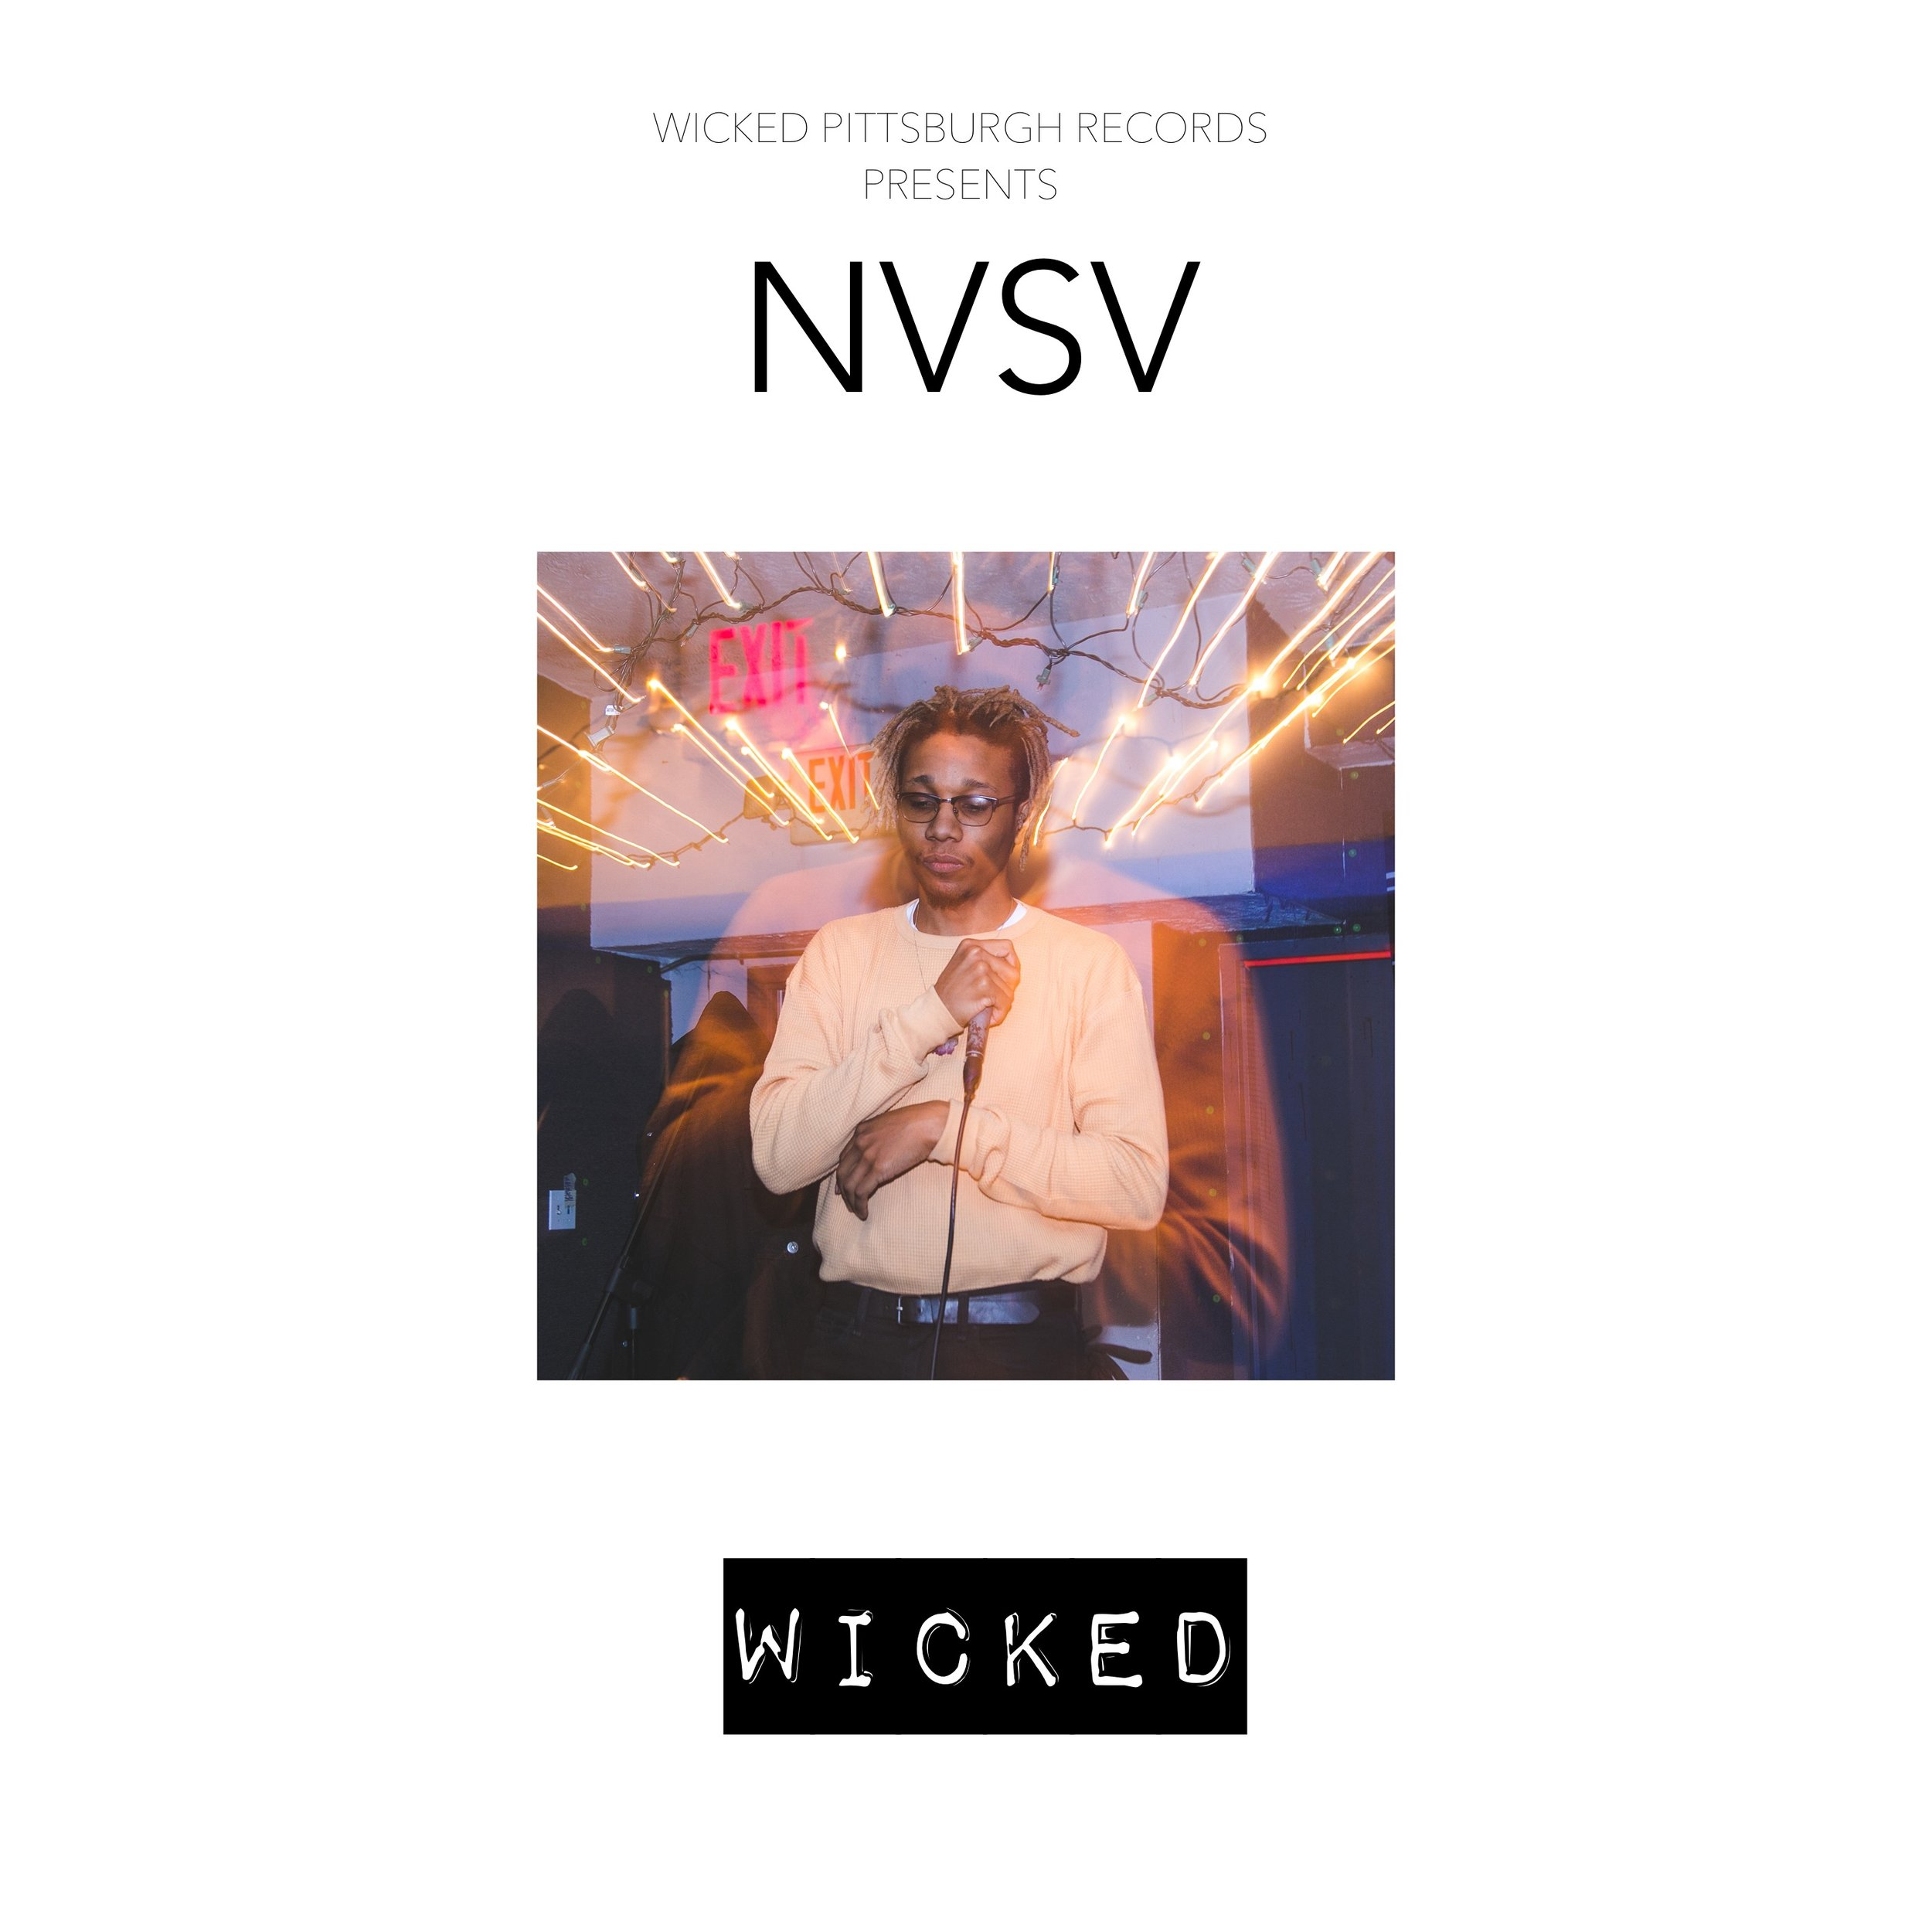 NVSV Album Cover - photo and design by Michael Schwarz